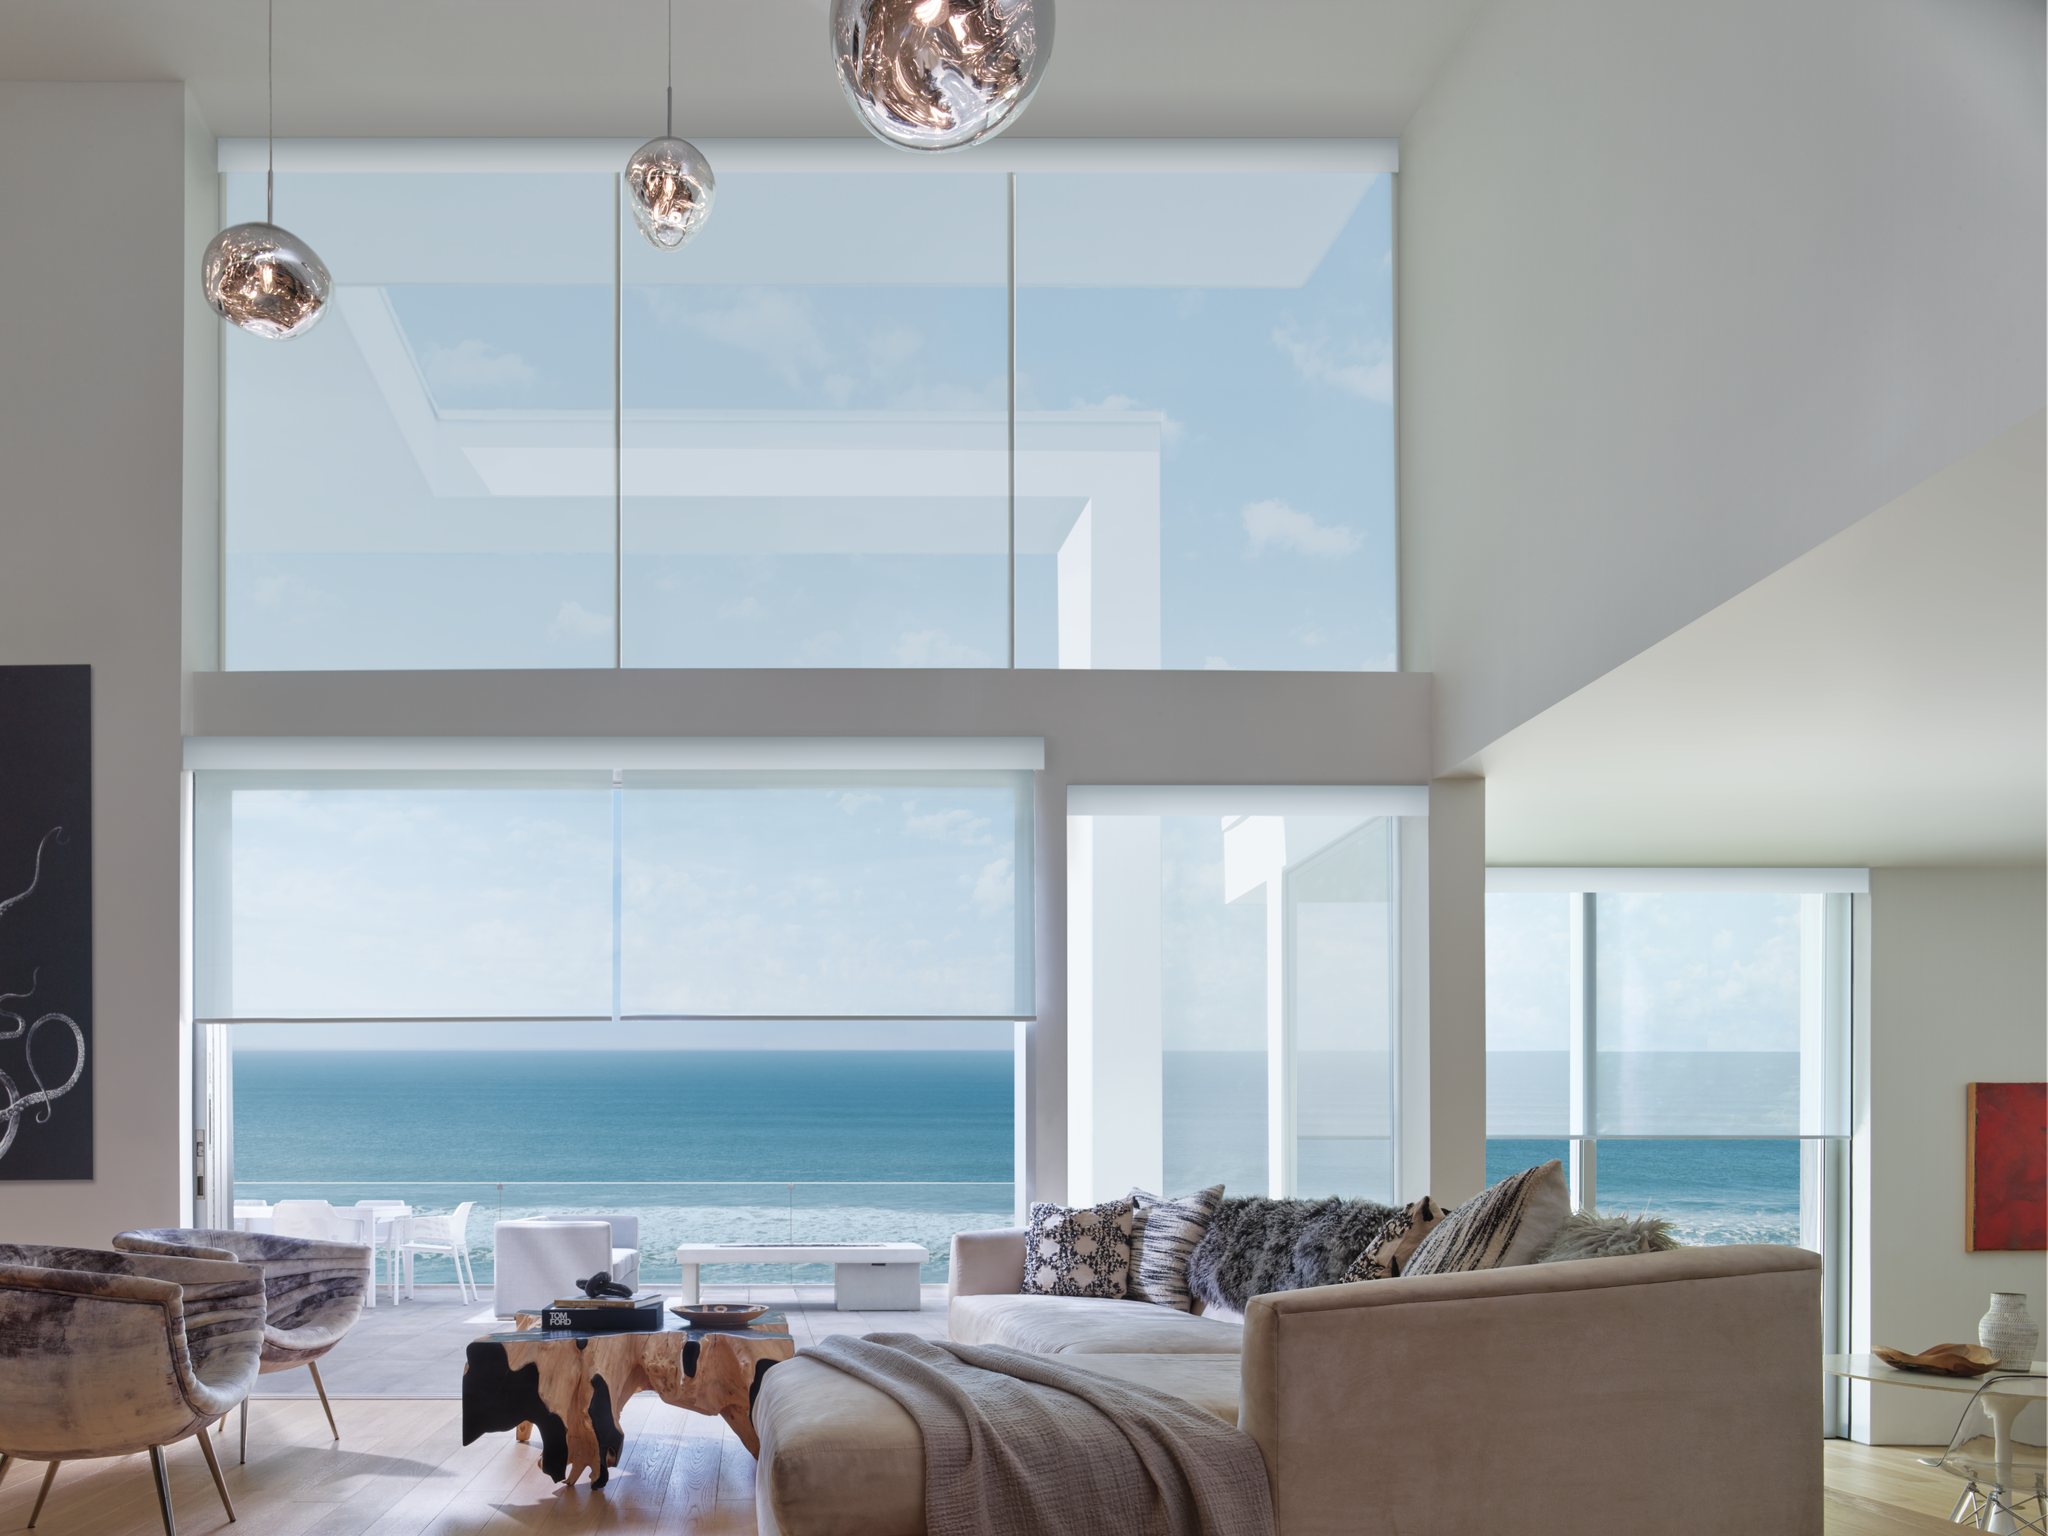 The Custom Integrator Program from Hunter Douglas supports integrators in specifying automated window treatment solutions such as the new PowerView+™ hardwired automated shade.